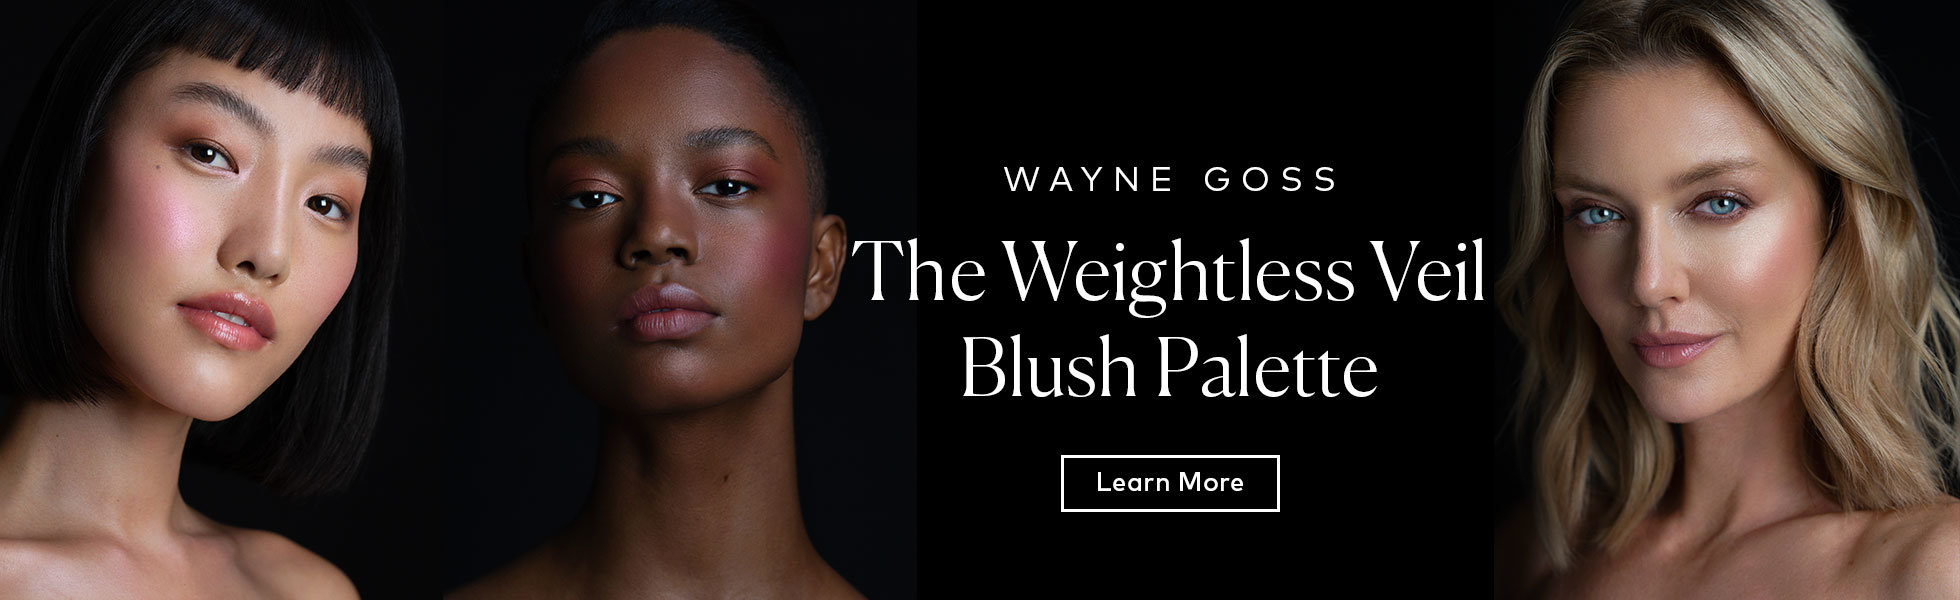 Shop Wayne Goss The Weightless Veil Blush Palettes on Beautylish.com